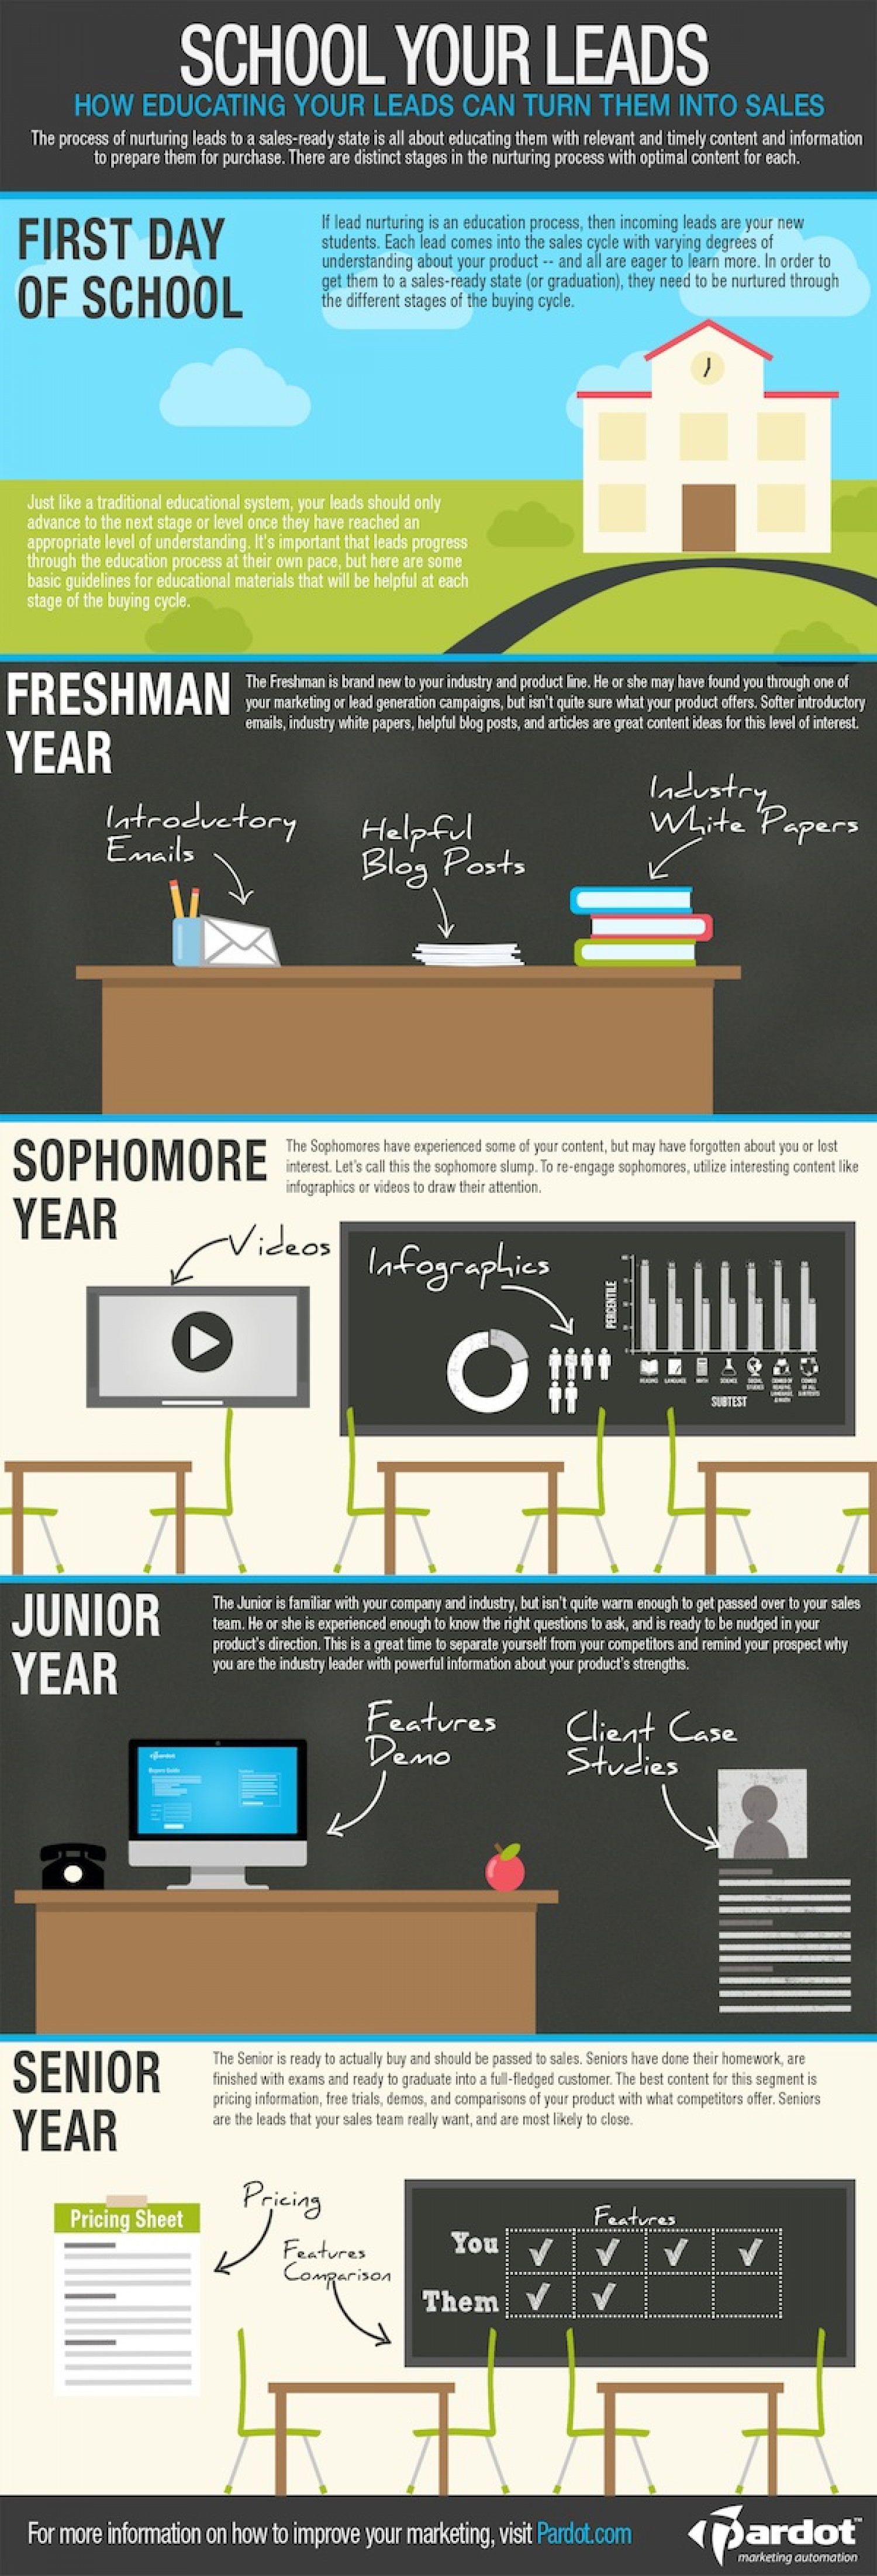 School Your Leads Infographic